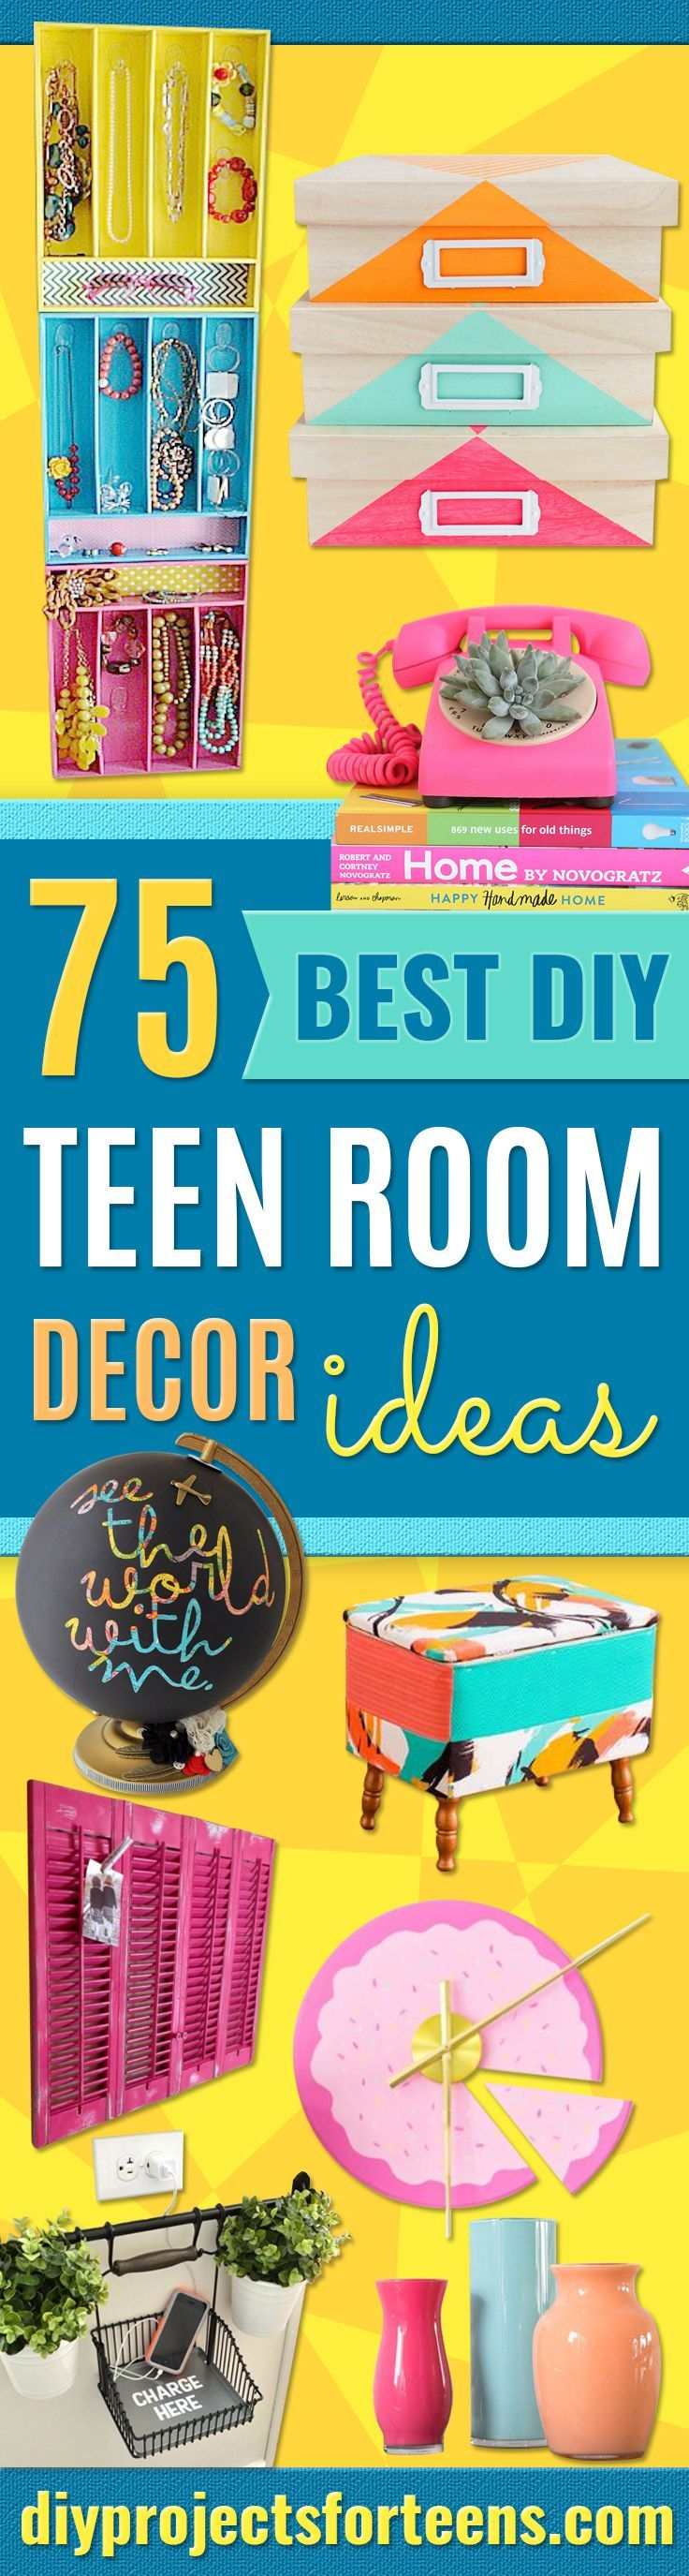 Best DIY Room Decor Ideas For Teens And Teenagers